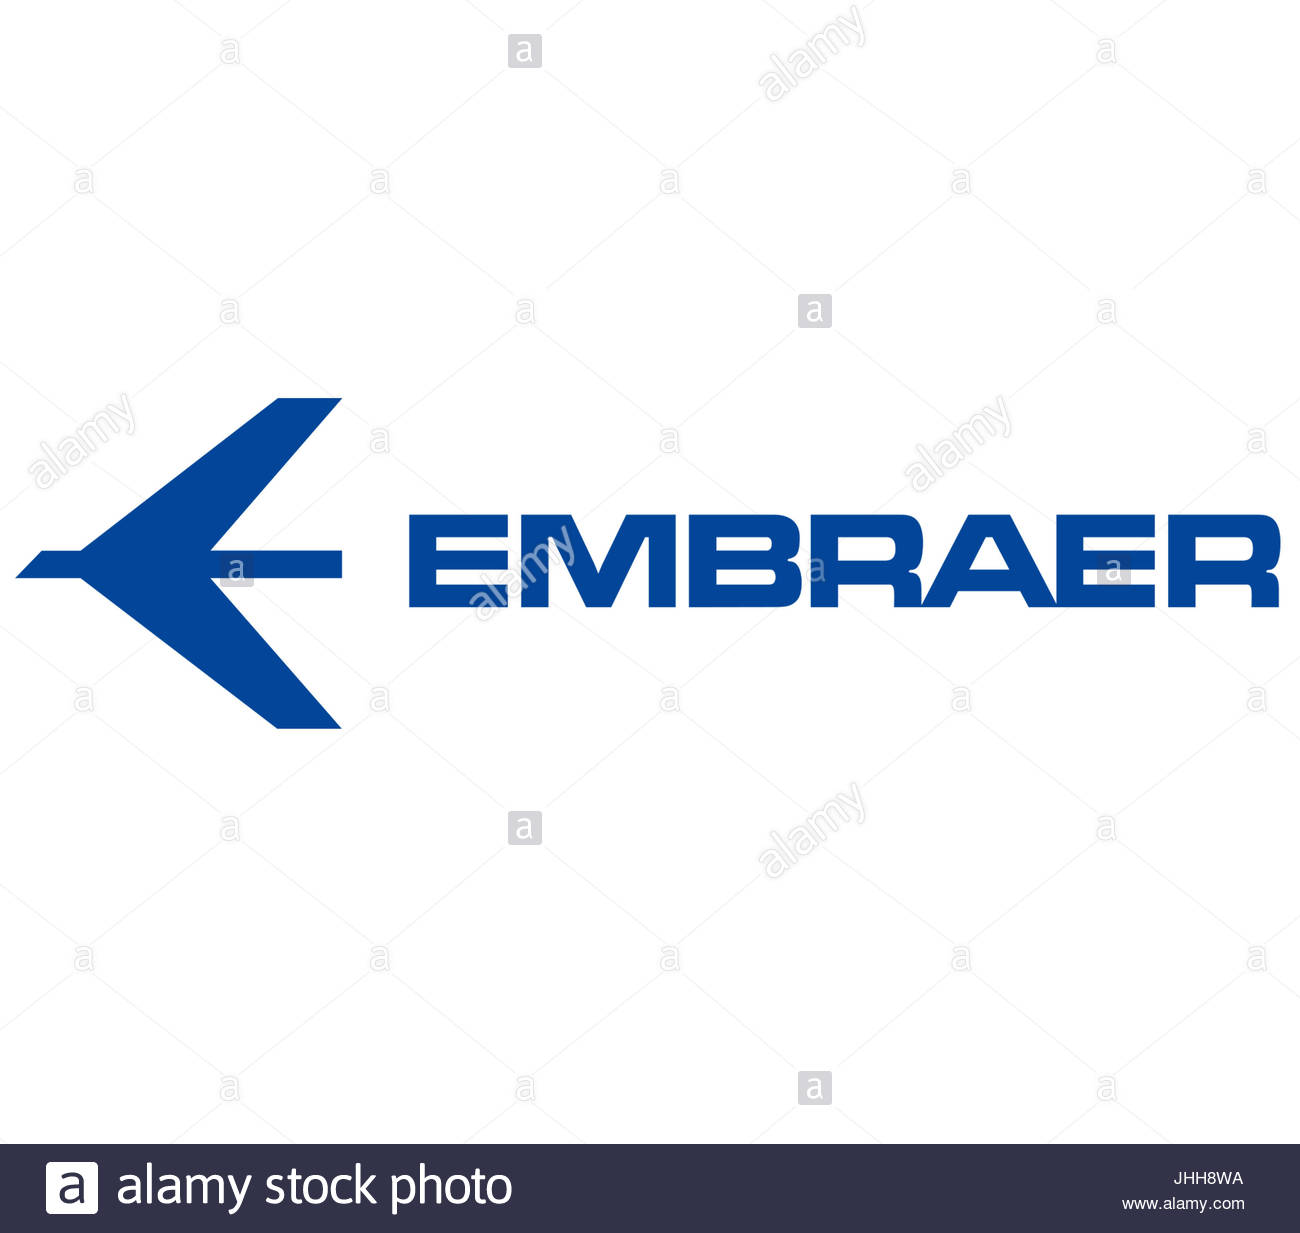 Embraer logo icon - Stock Image